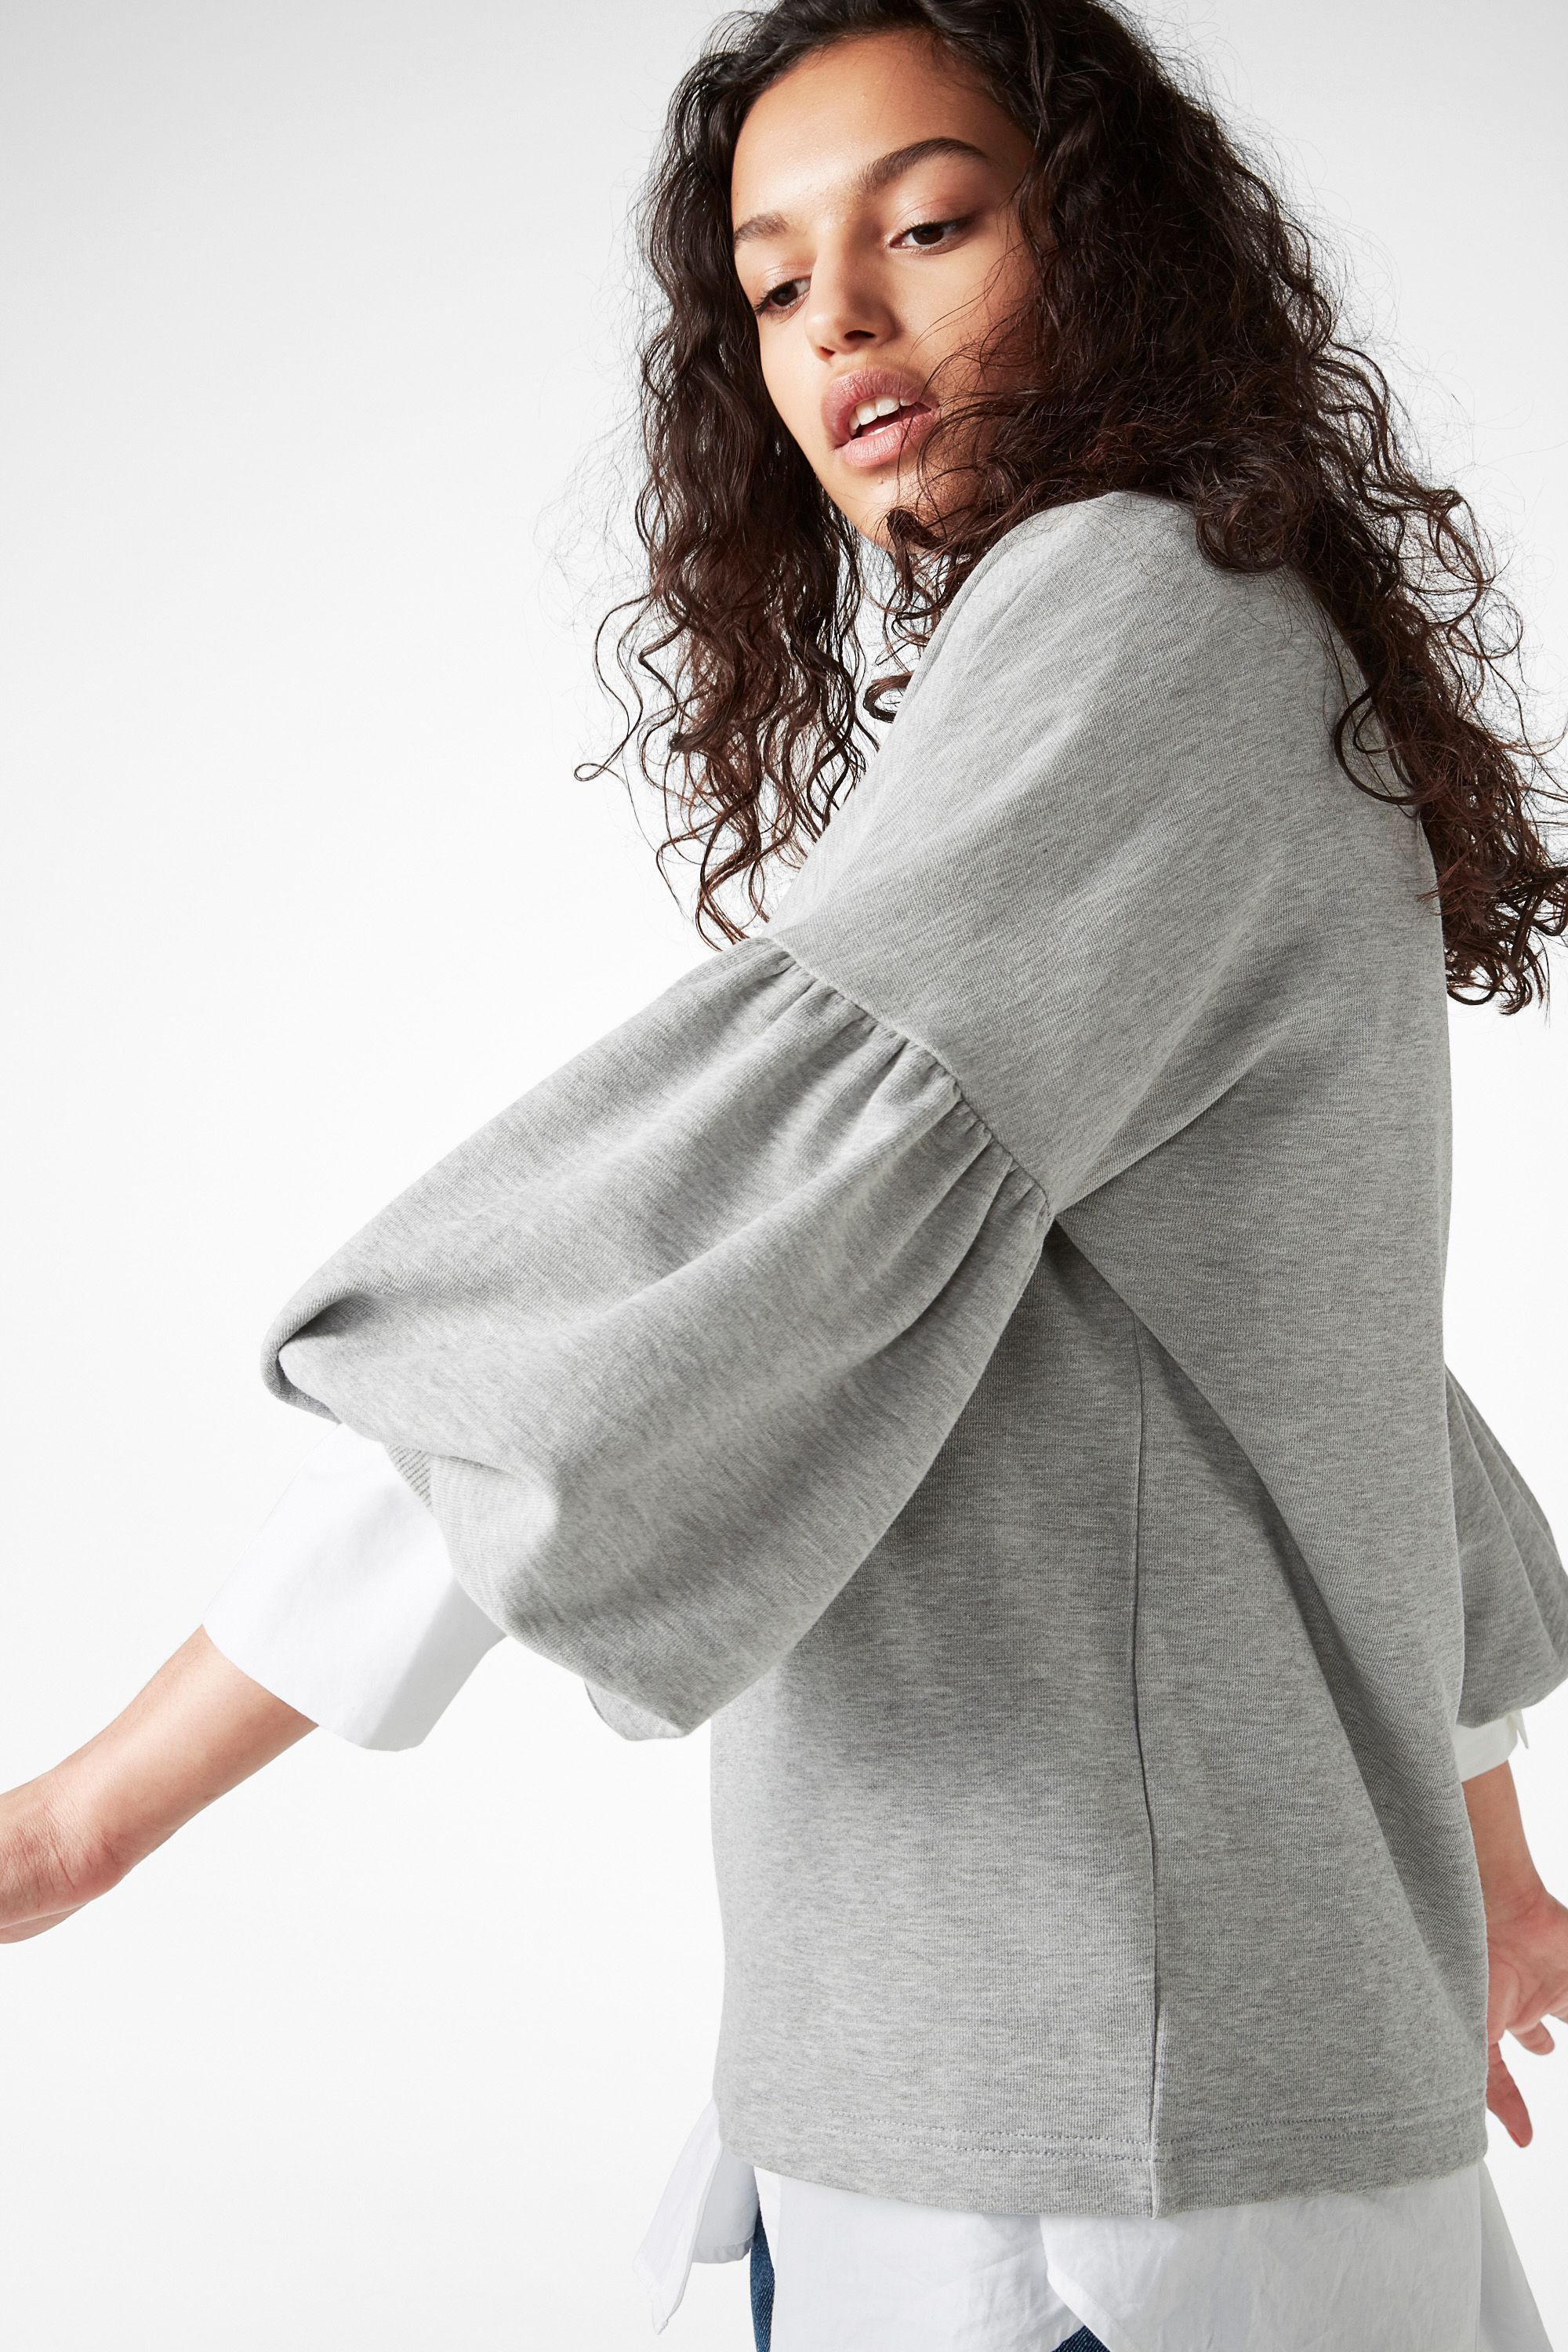 Just when you think you've seen this beloved round-neck sweatshirt before – poof! The puffed sleeves add the unexpected.